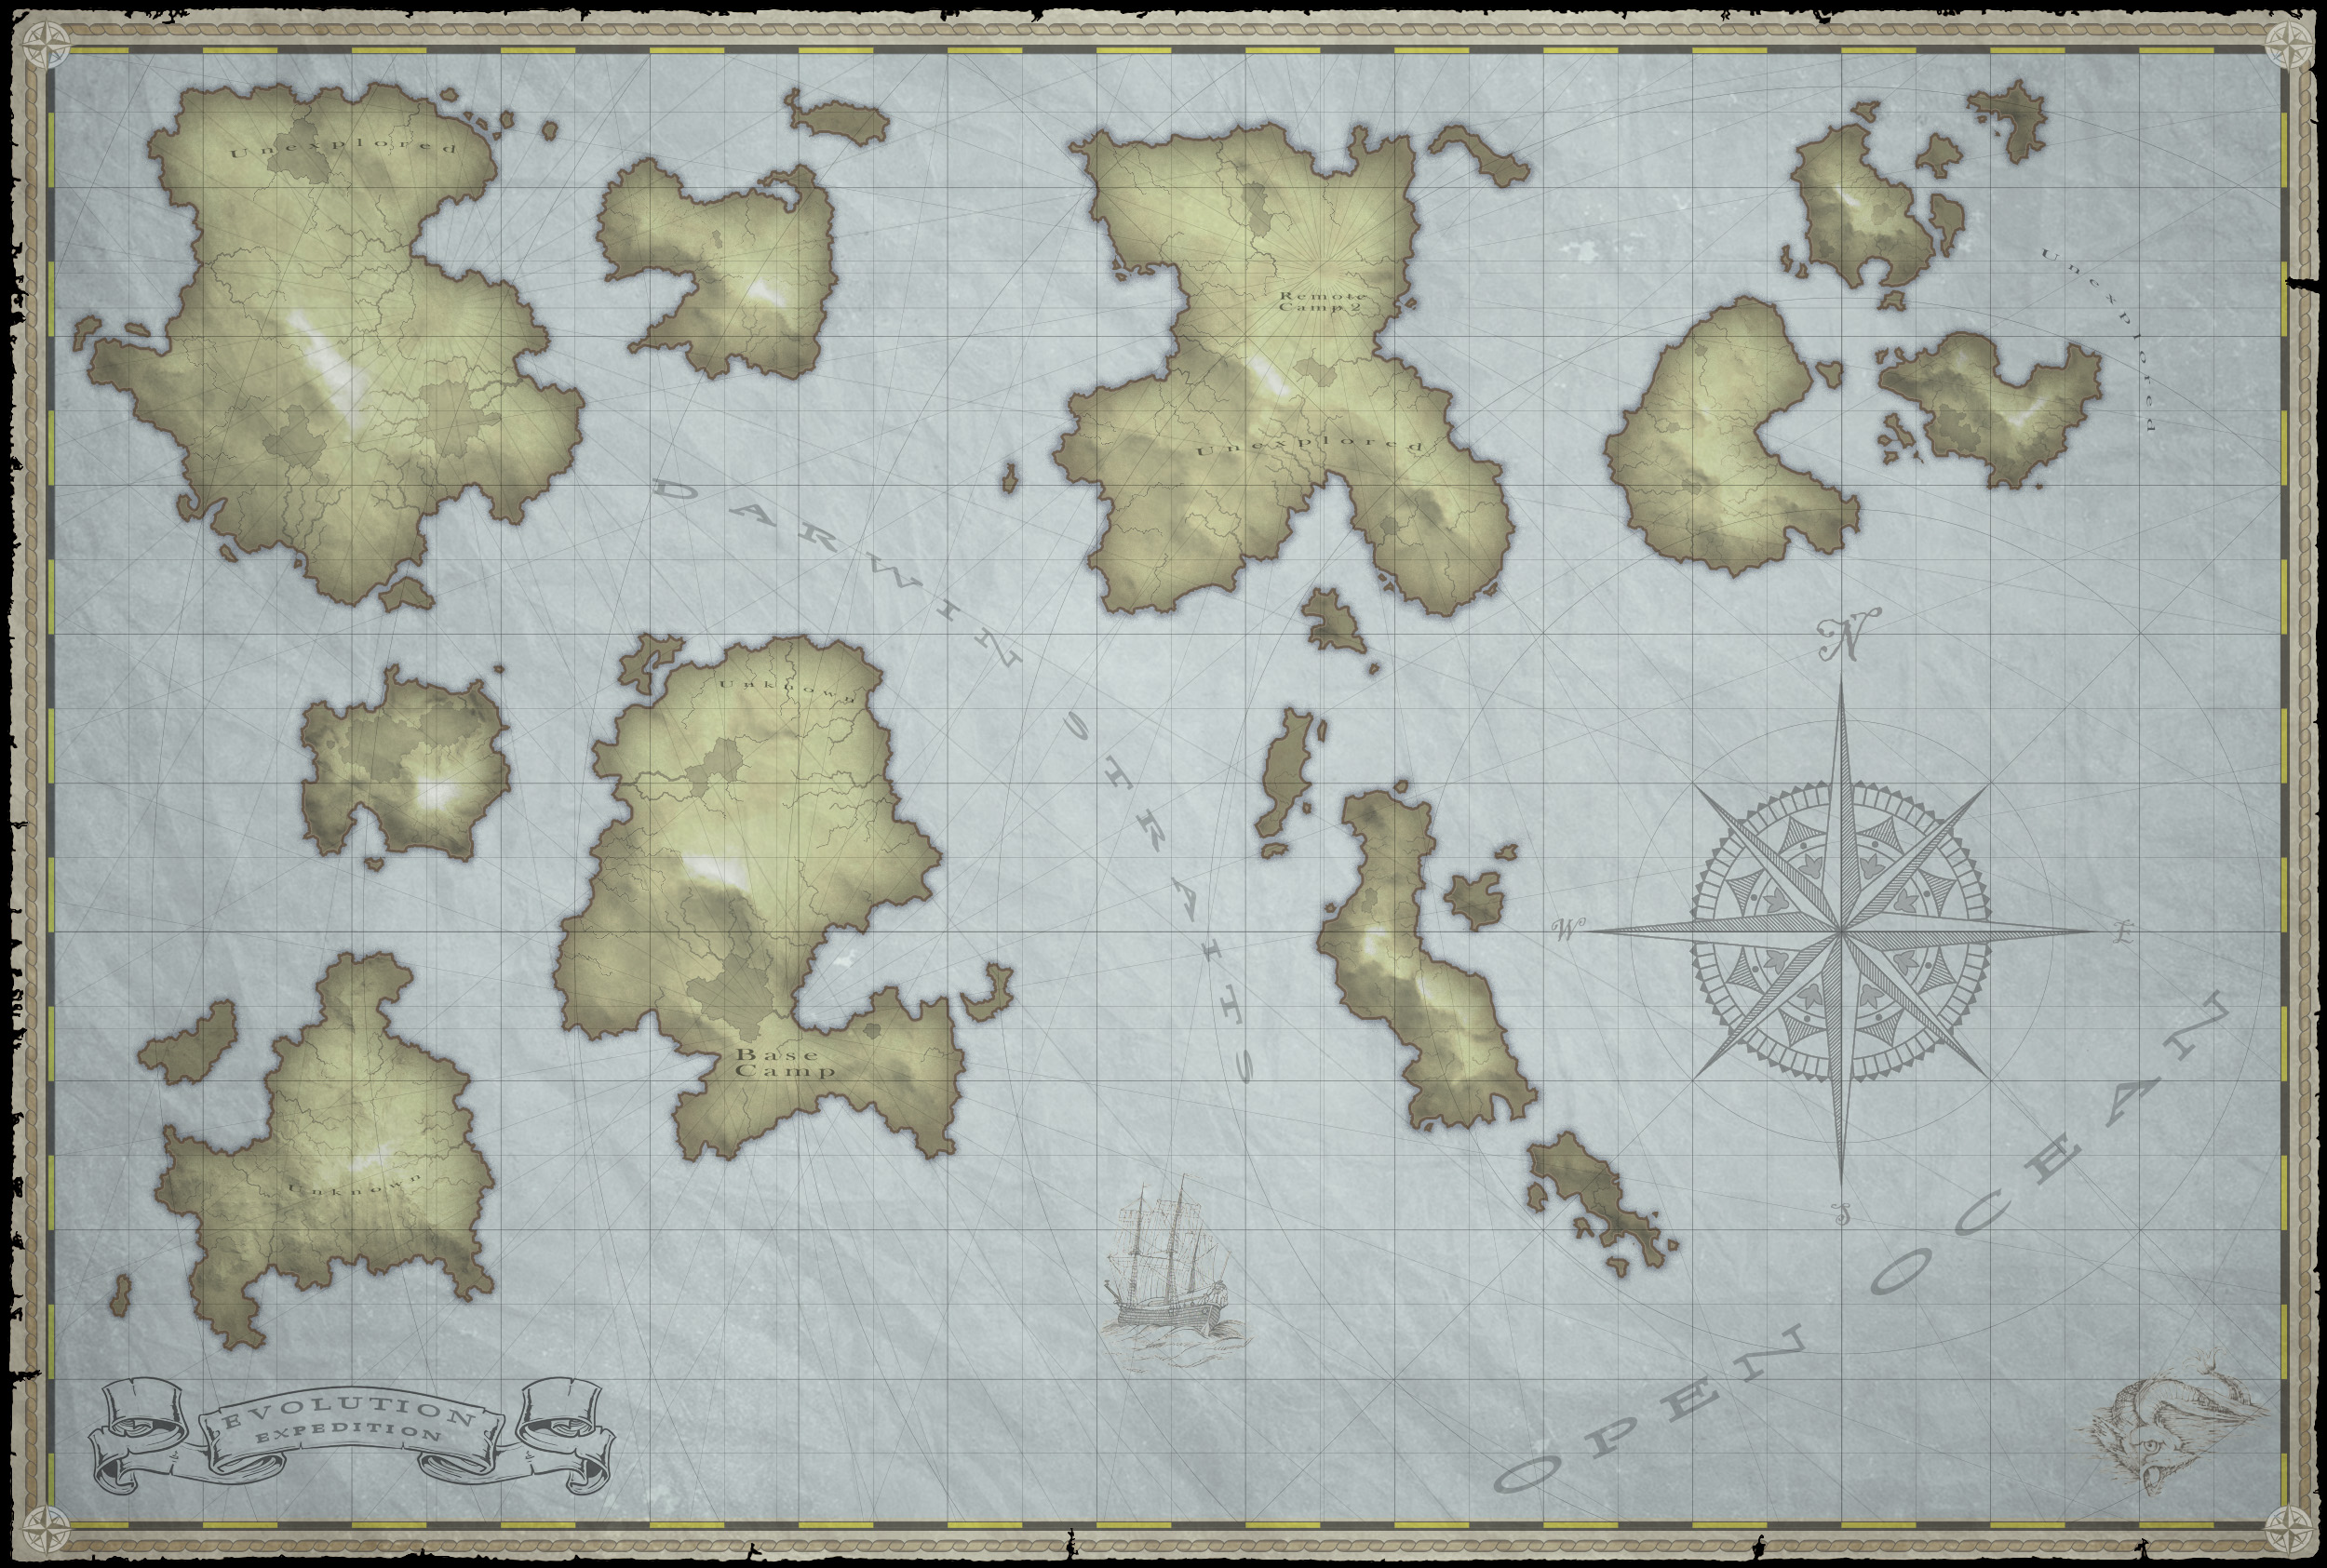 Old world map creation ibuild3d this was a project where i needed to generate a random but realistic old world style map i was looking for a somewhat procedural way to generate islands gumiabroncs Image collections